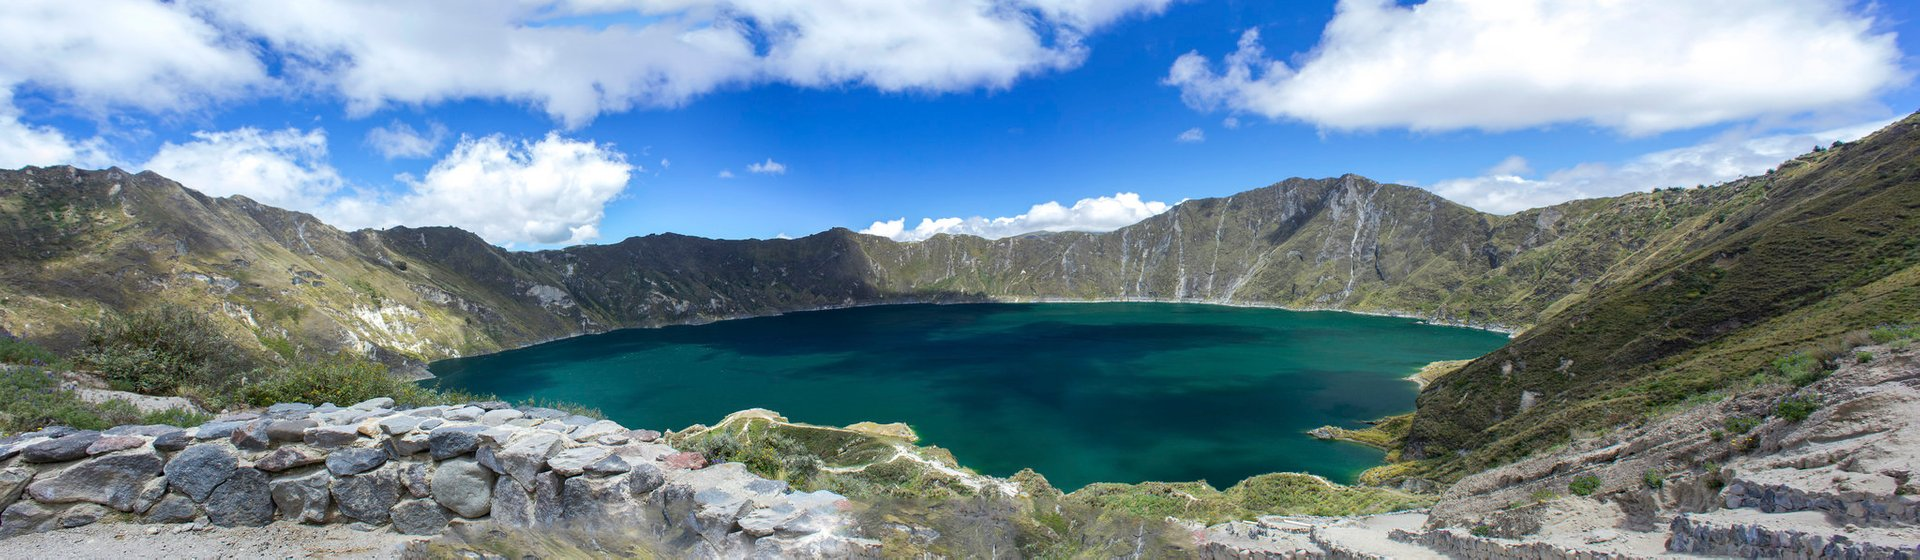 Quilotoa Loop in Ecuador - Best Season